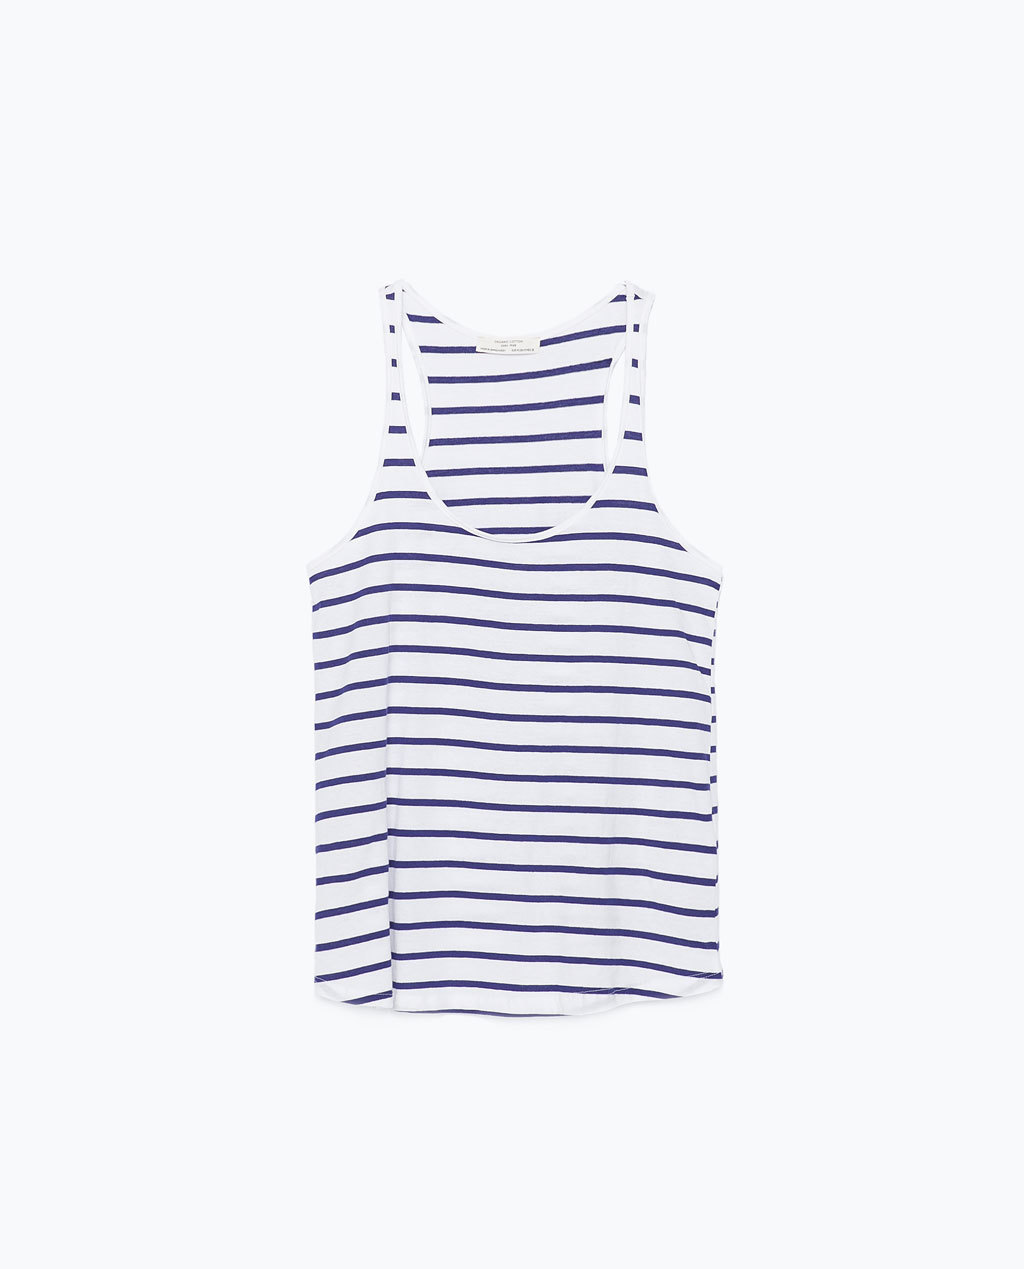 Strappy Top - sleeve style: standard vest straps/shoulder straps; pattern: horizontal stripes; waist detail: drop waist; style: vest top; predominant colour: white; secondary colour: navy; occasions: casual, holiday; length: standard; neckline: scoop; fibres: cotton - 100%; fit: loose; sleeve length: sleeveless; pattern type: fabric; pattern size: standard; texture group: jersey - stretchy/drapey; season: s/s 2015; wardrobe: basic